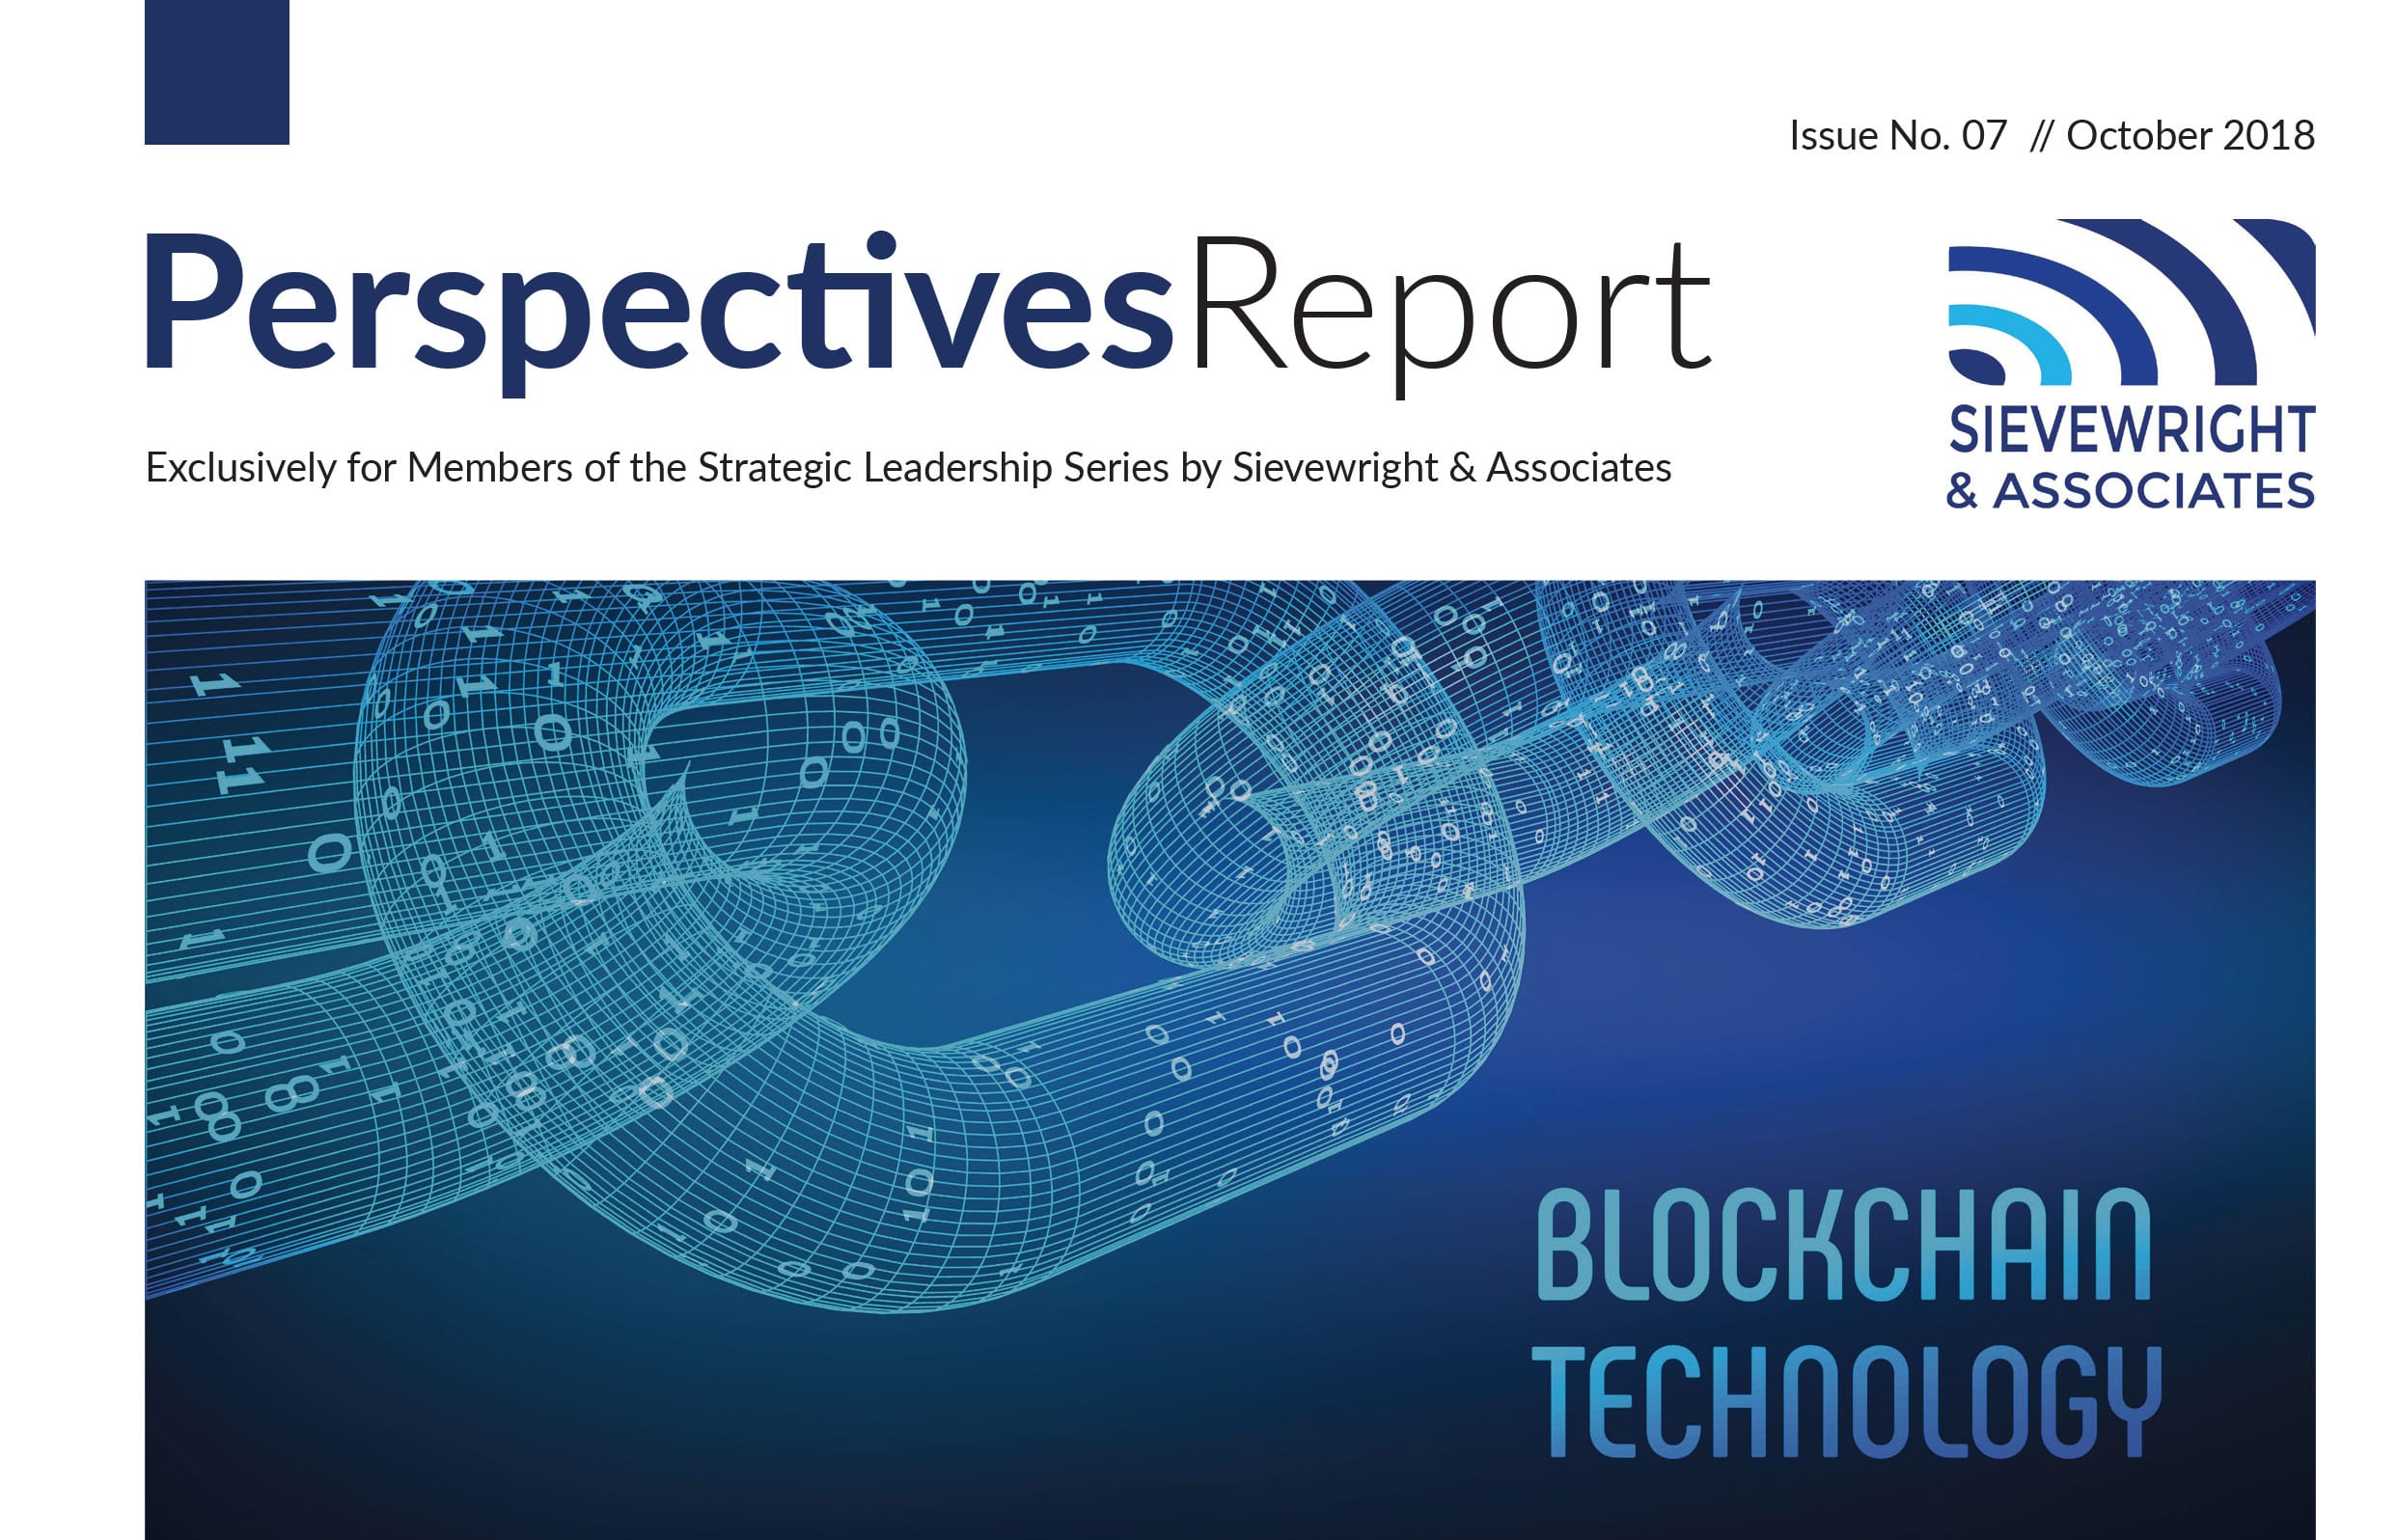 Perspectives Report Cover Image October 2019